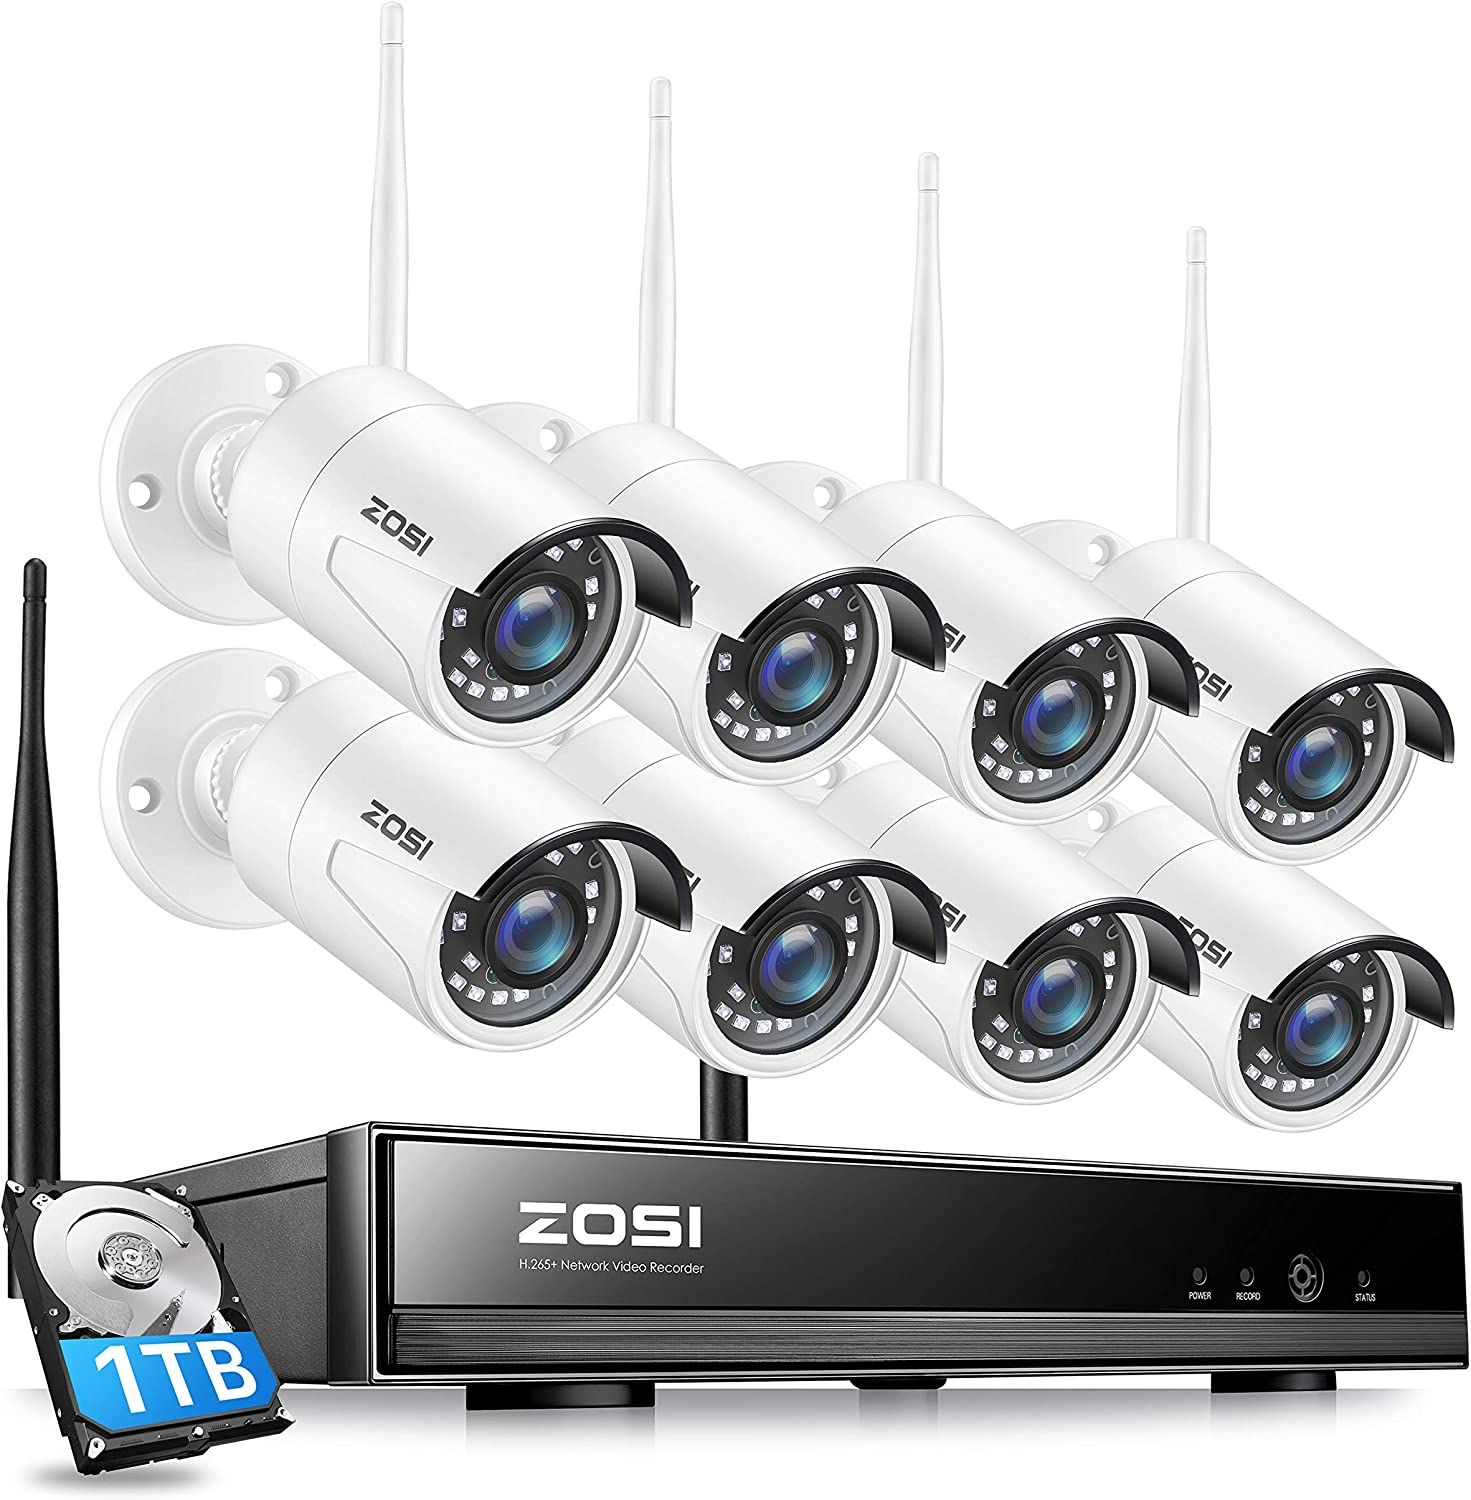 ZOSI 8CH 1080P Wireless Security Camera System with 1TB Hard Drive, H.265+ 8CH 1080P CCTV NVR,4PCS 1080P Indoor Outdoor WiFi Surveillance Camera,80FT Night Vision, Motion Alert,Remote Access